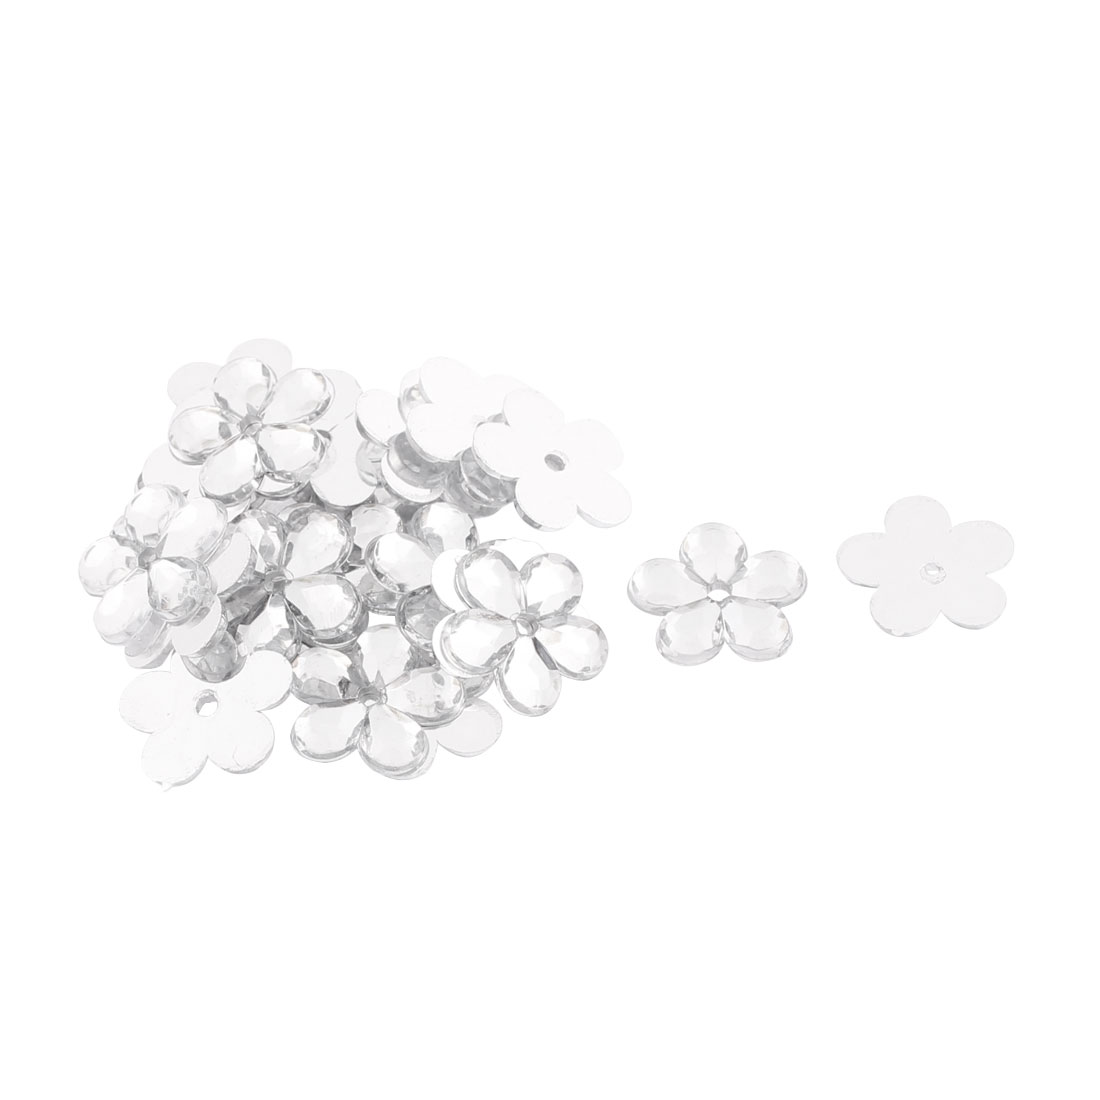 Clothing Dress Accessary Flat Back Flower Shaped Rhinestone Crystal DIY Decor 20pcs